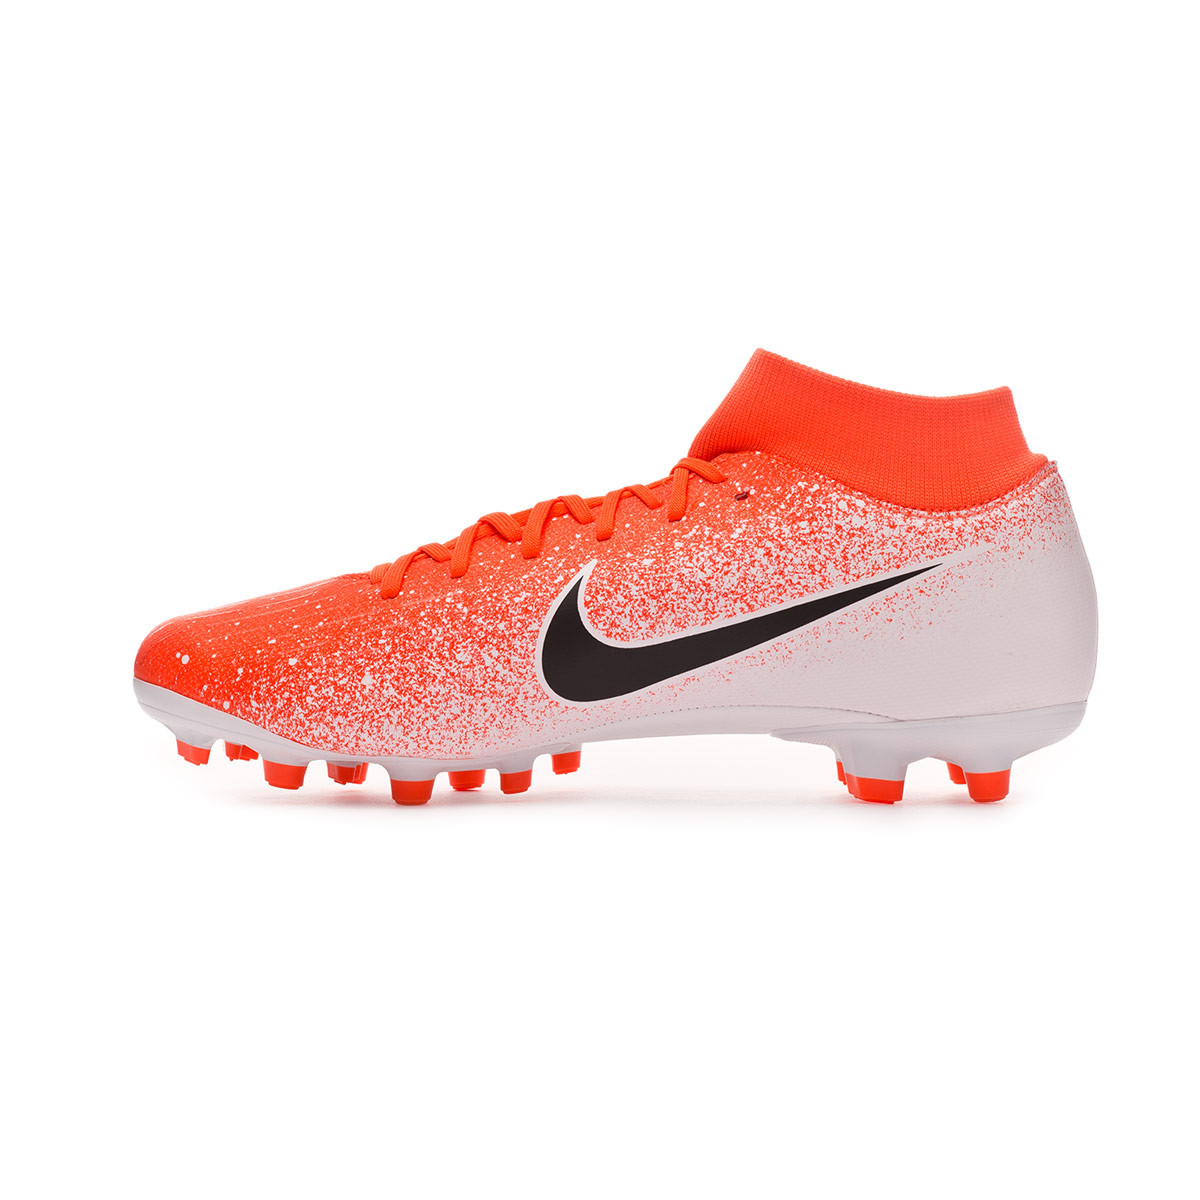 5fb201fdde0 Chuteira Nike Mercurial Superfly VI Academy MG Hyper crimson-Black-White -  Loja de futebol Fútbol Emotion